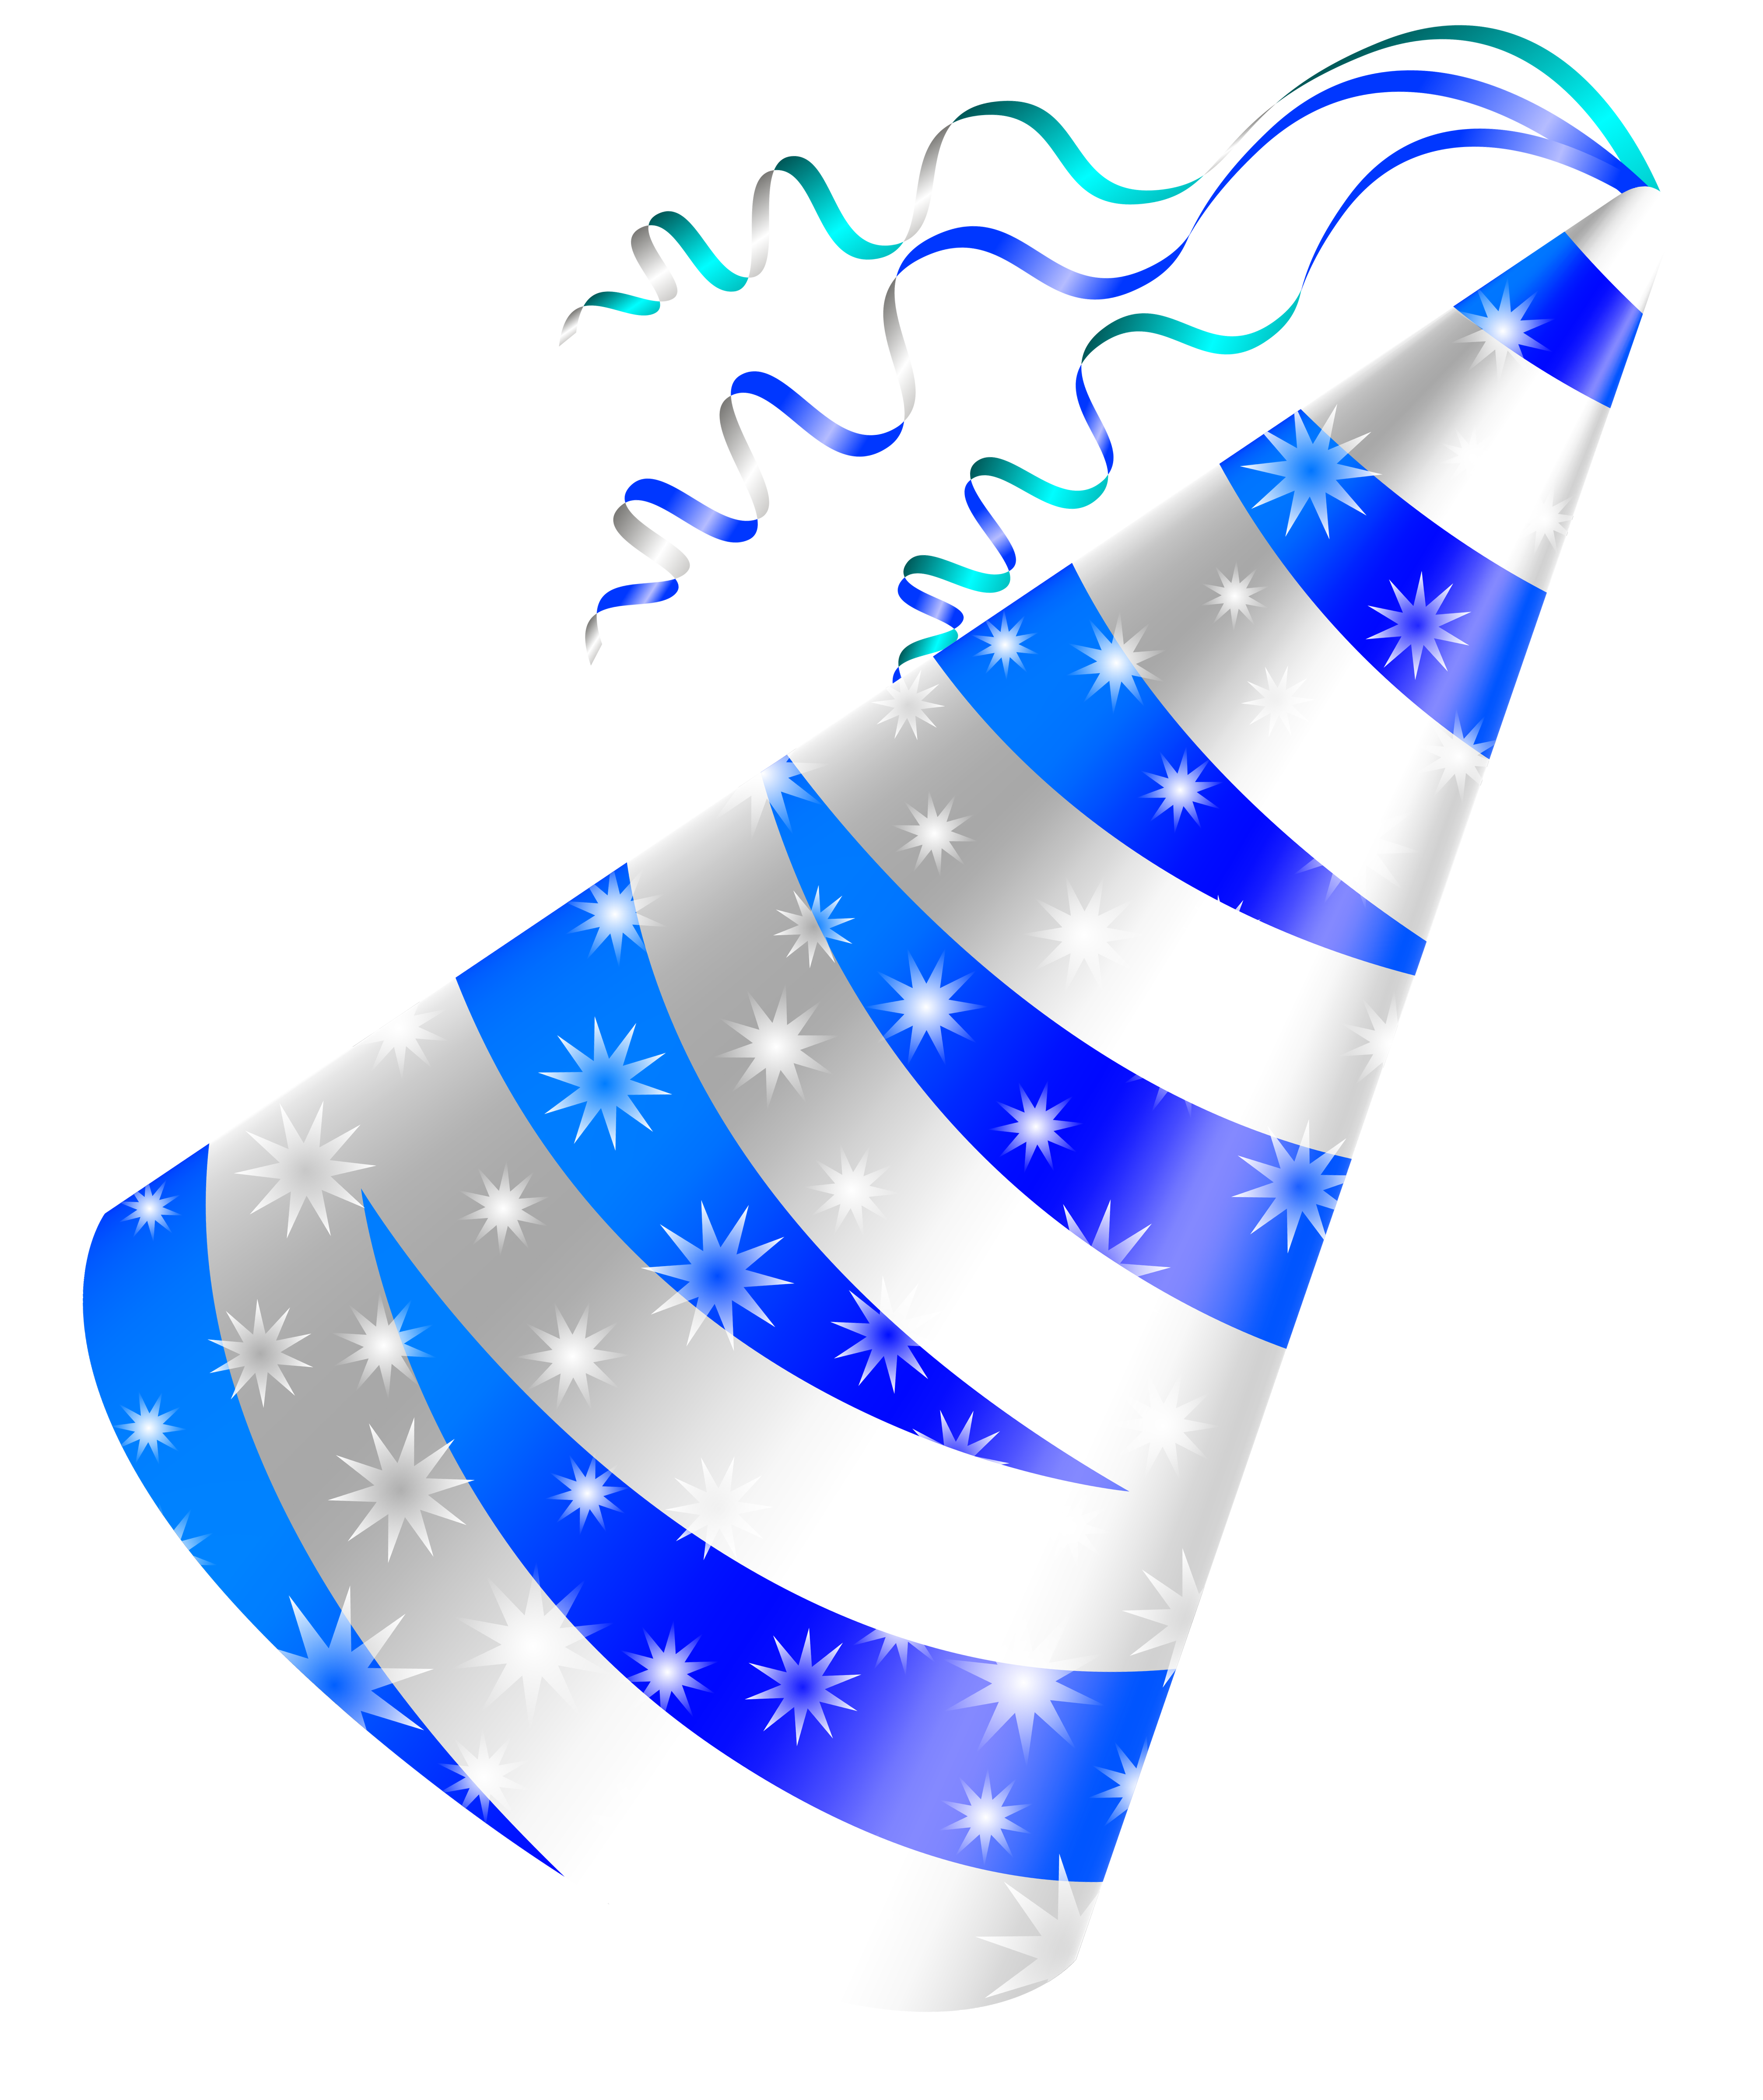 Party transparent background clipground. Worm clipart hat